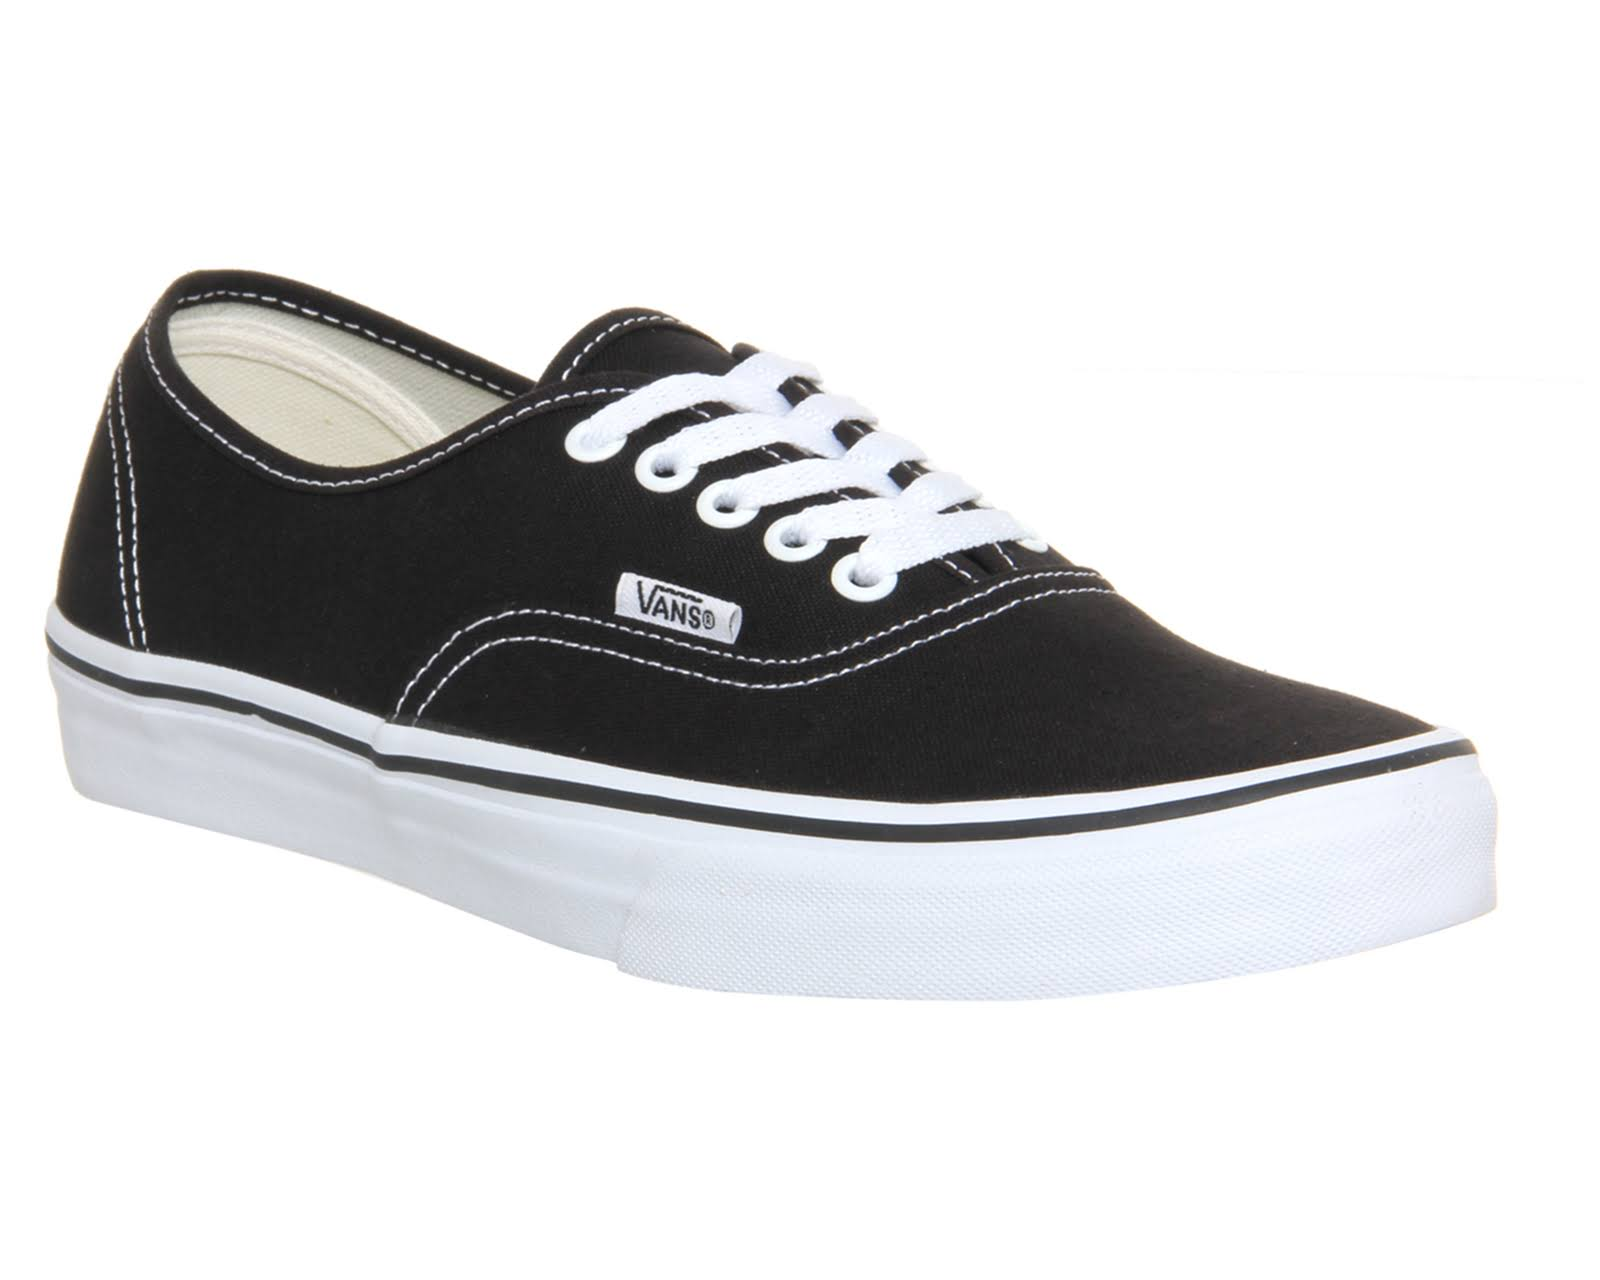 Authentic Shoes Black Blanco Negro Vans zdwFqSd